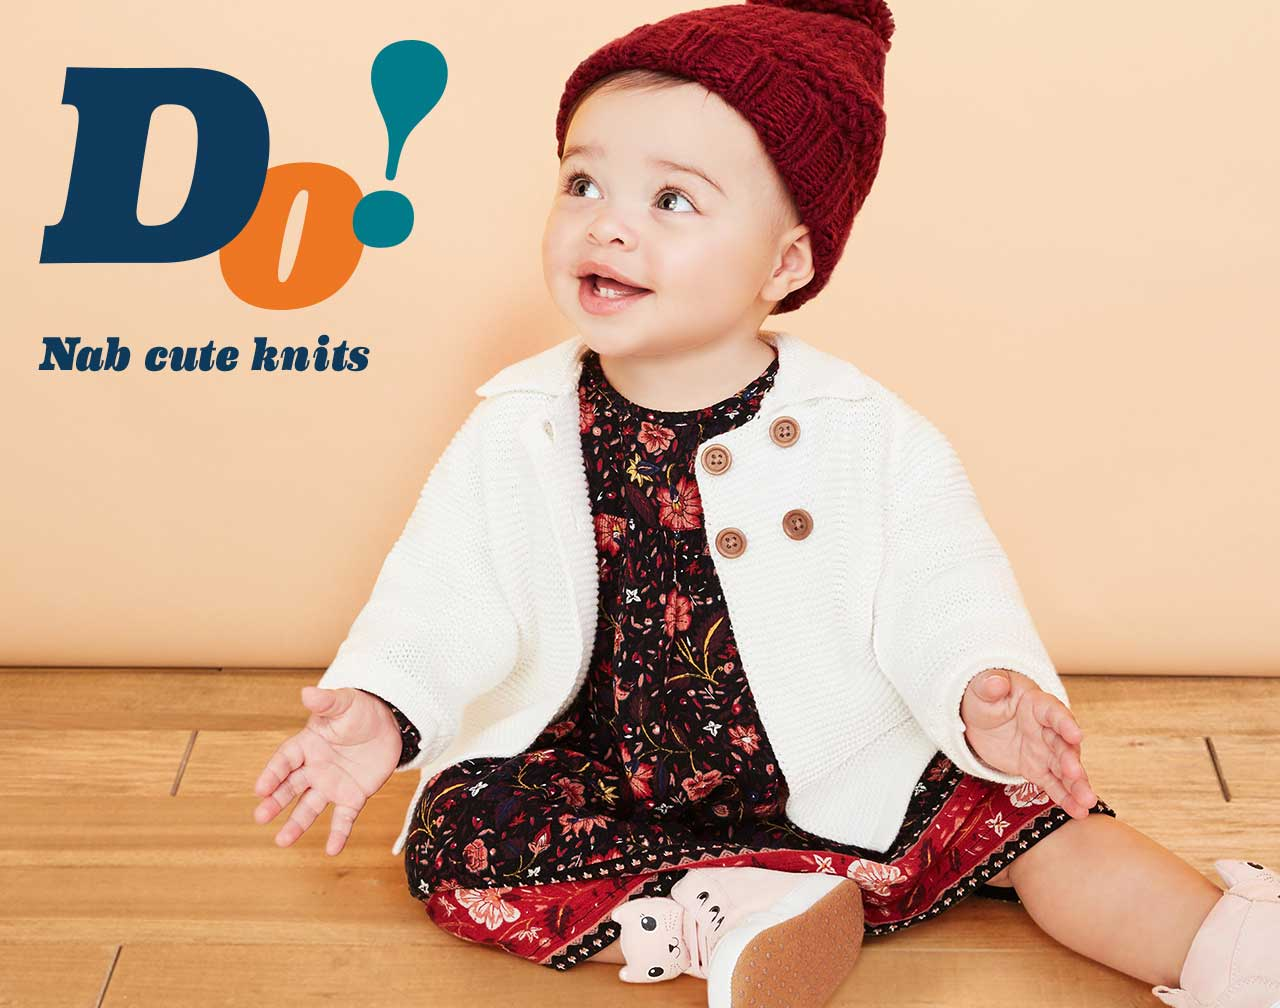 Do! Nab cute knits